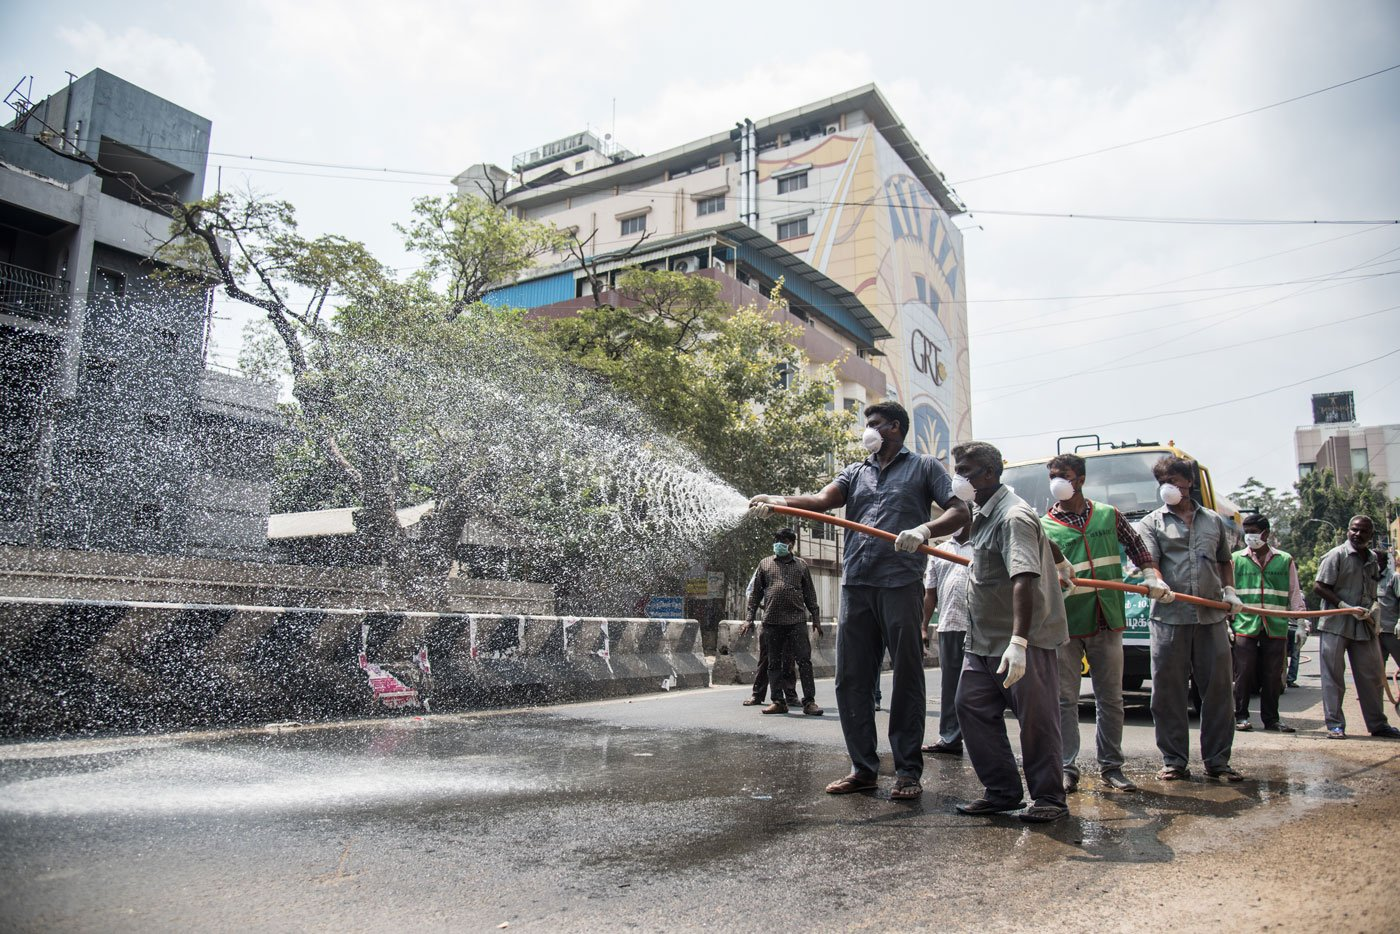 The cleaning of different streets in T. Nagar continues